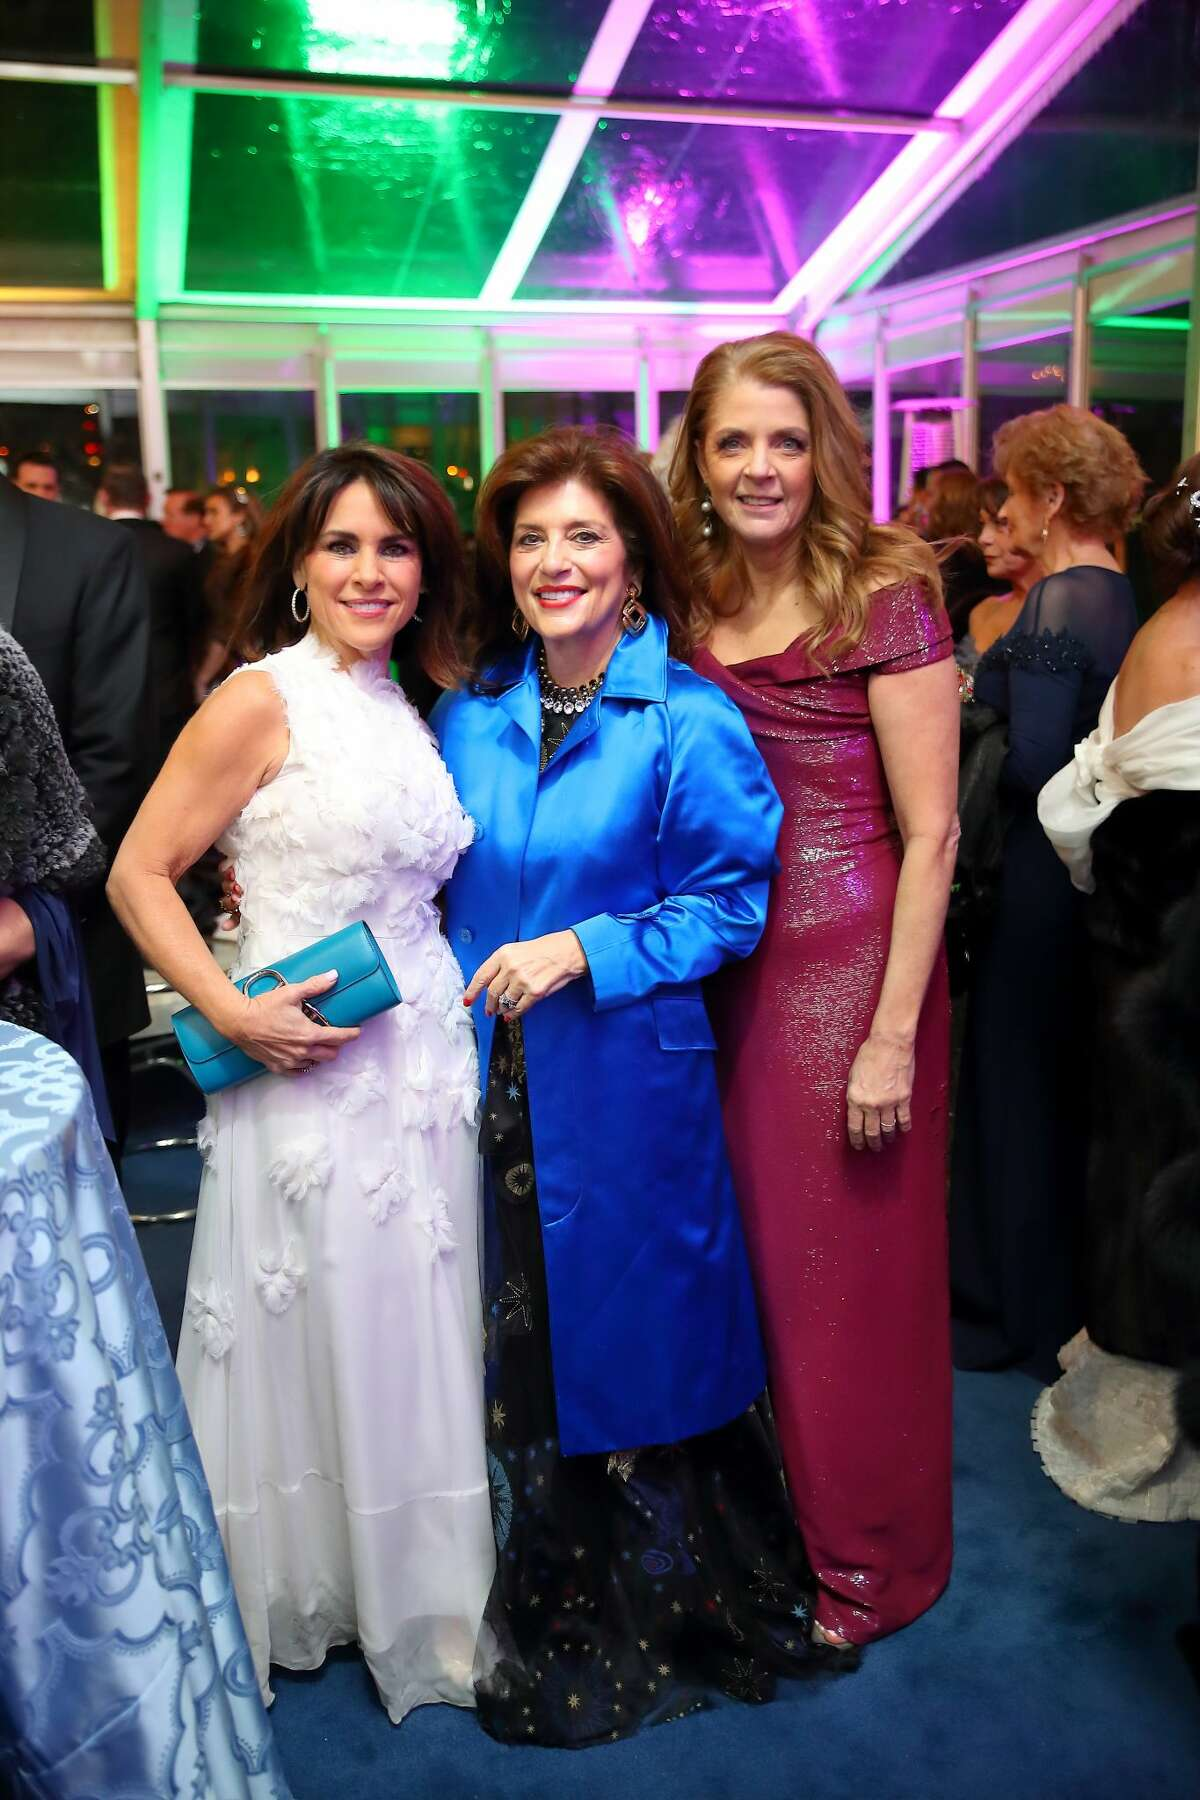 Maria Bush, Dancie Ware and Paige Fertitta at the San Luis Salute in Galveston, Texas on February 21, 2020